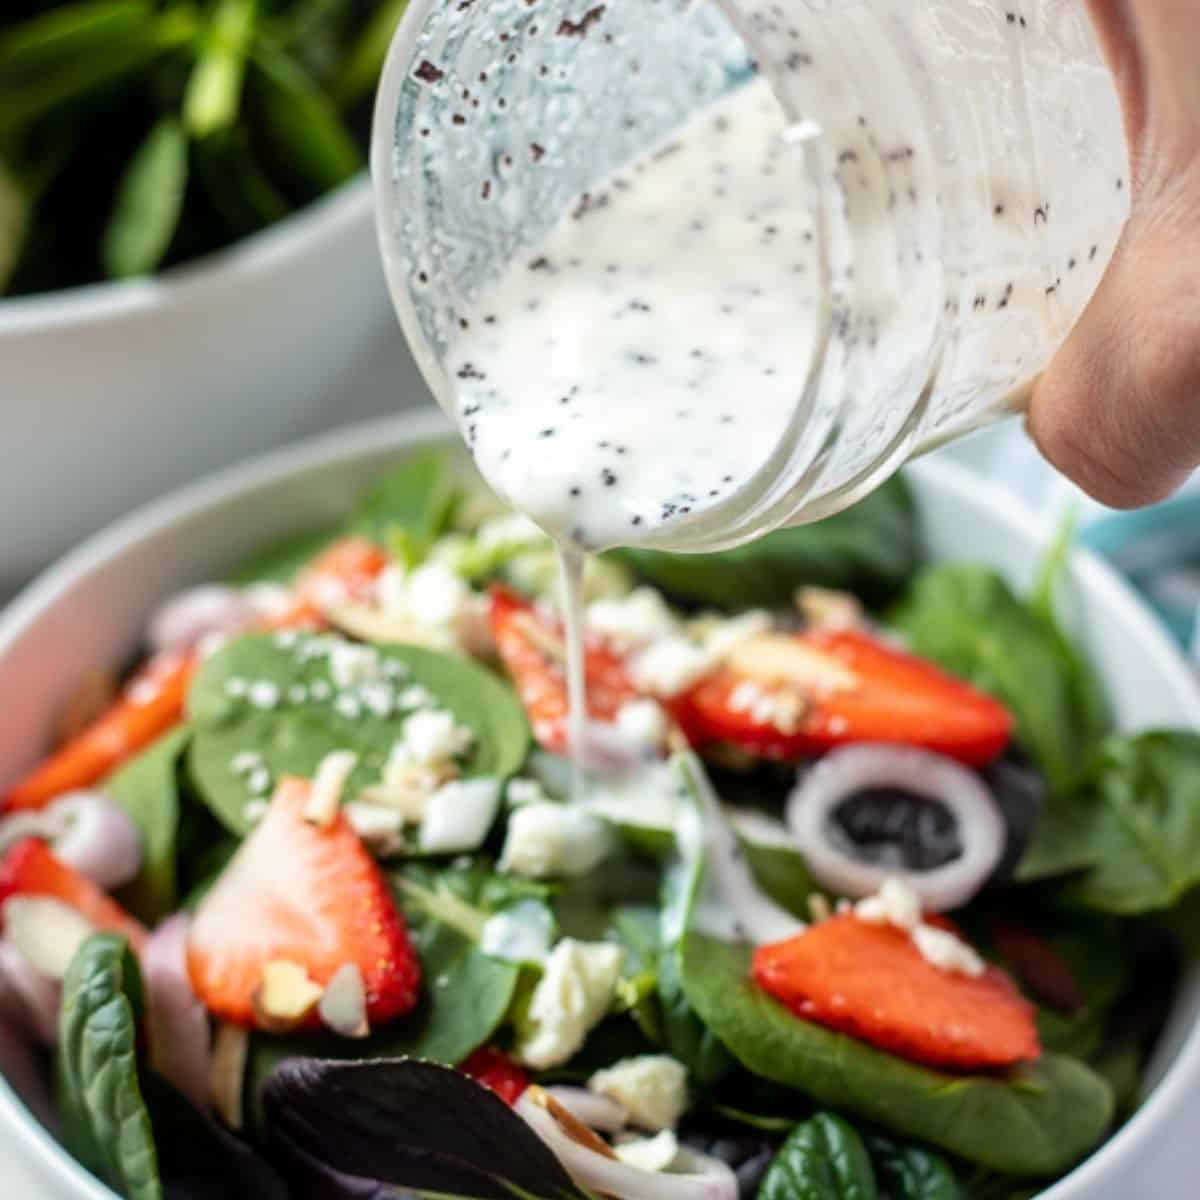 Poppyseed dressing being poured onto a strawberry spinach salad.